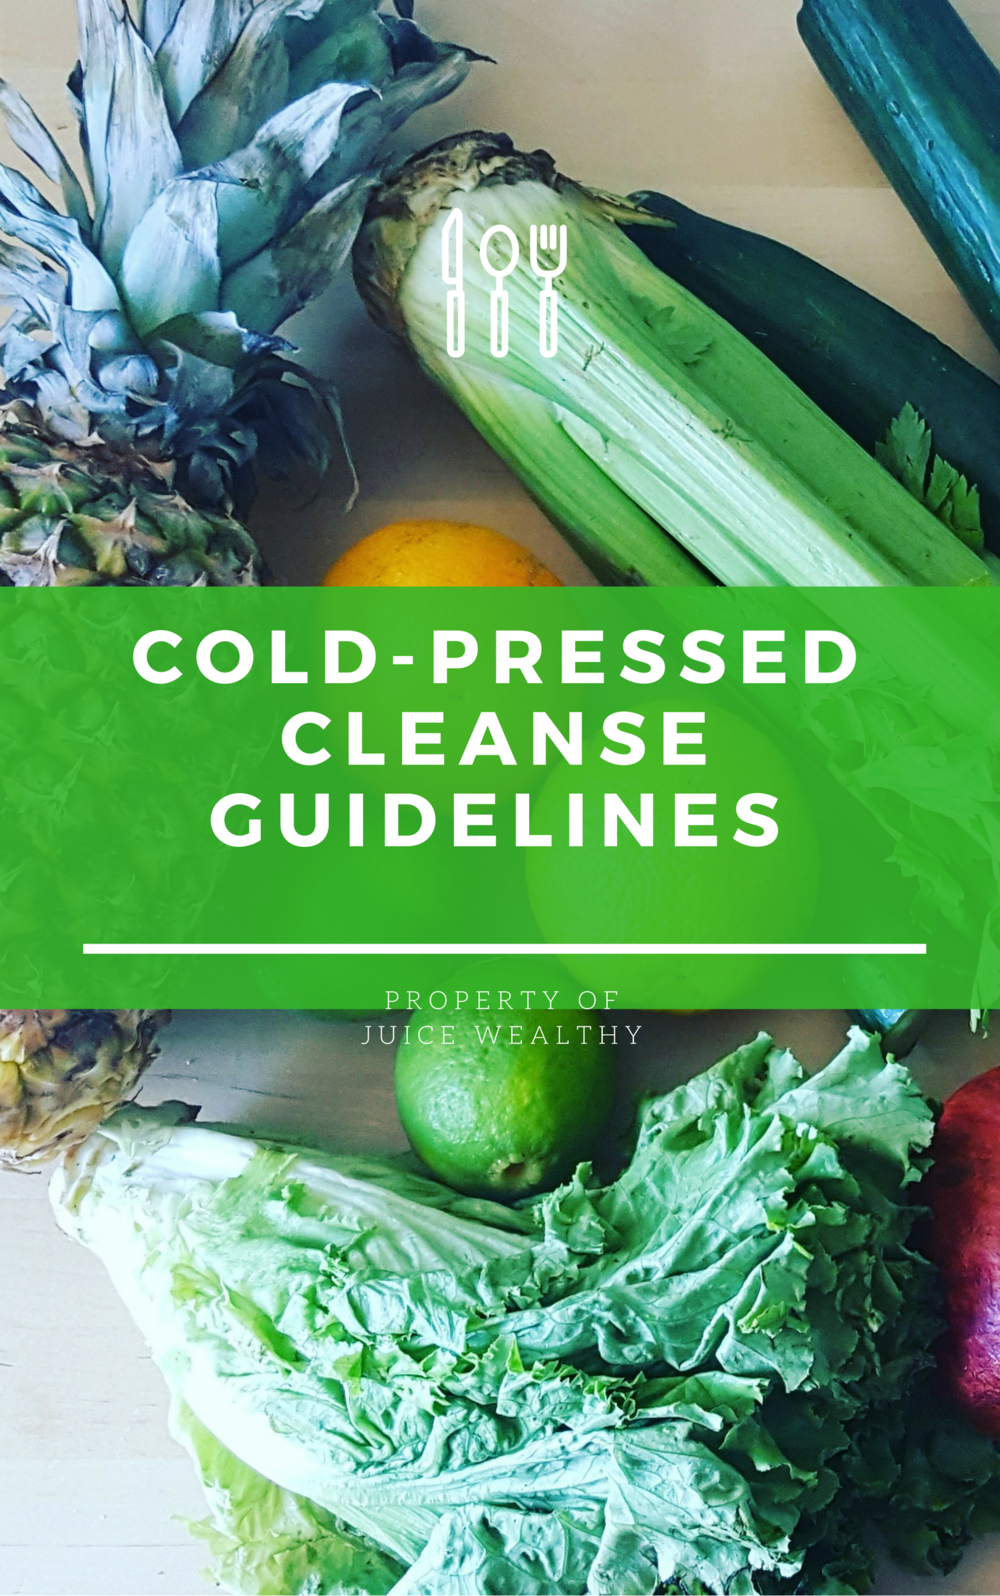 cold-pressed cleanse faqS - PDF DOWNLOAD